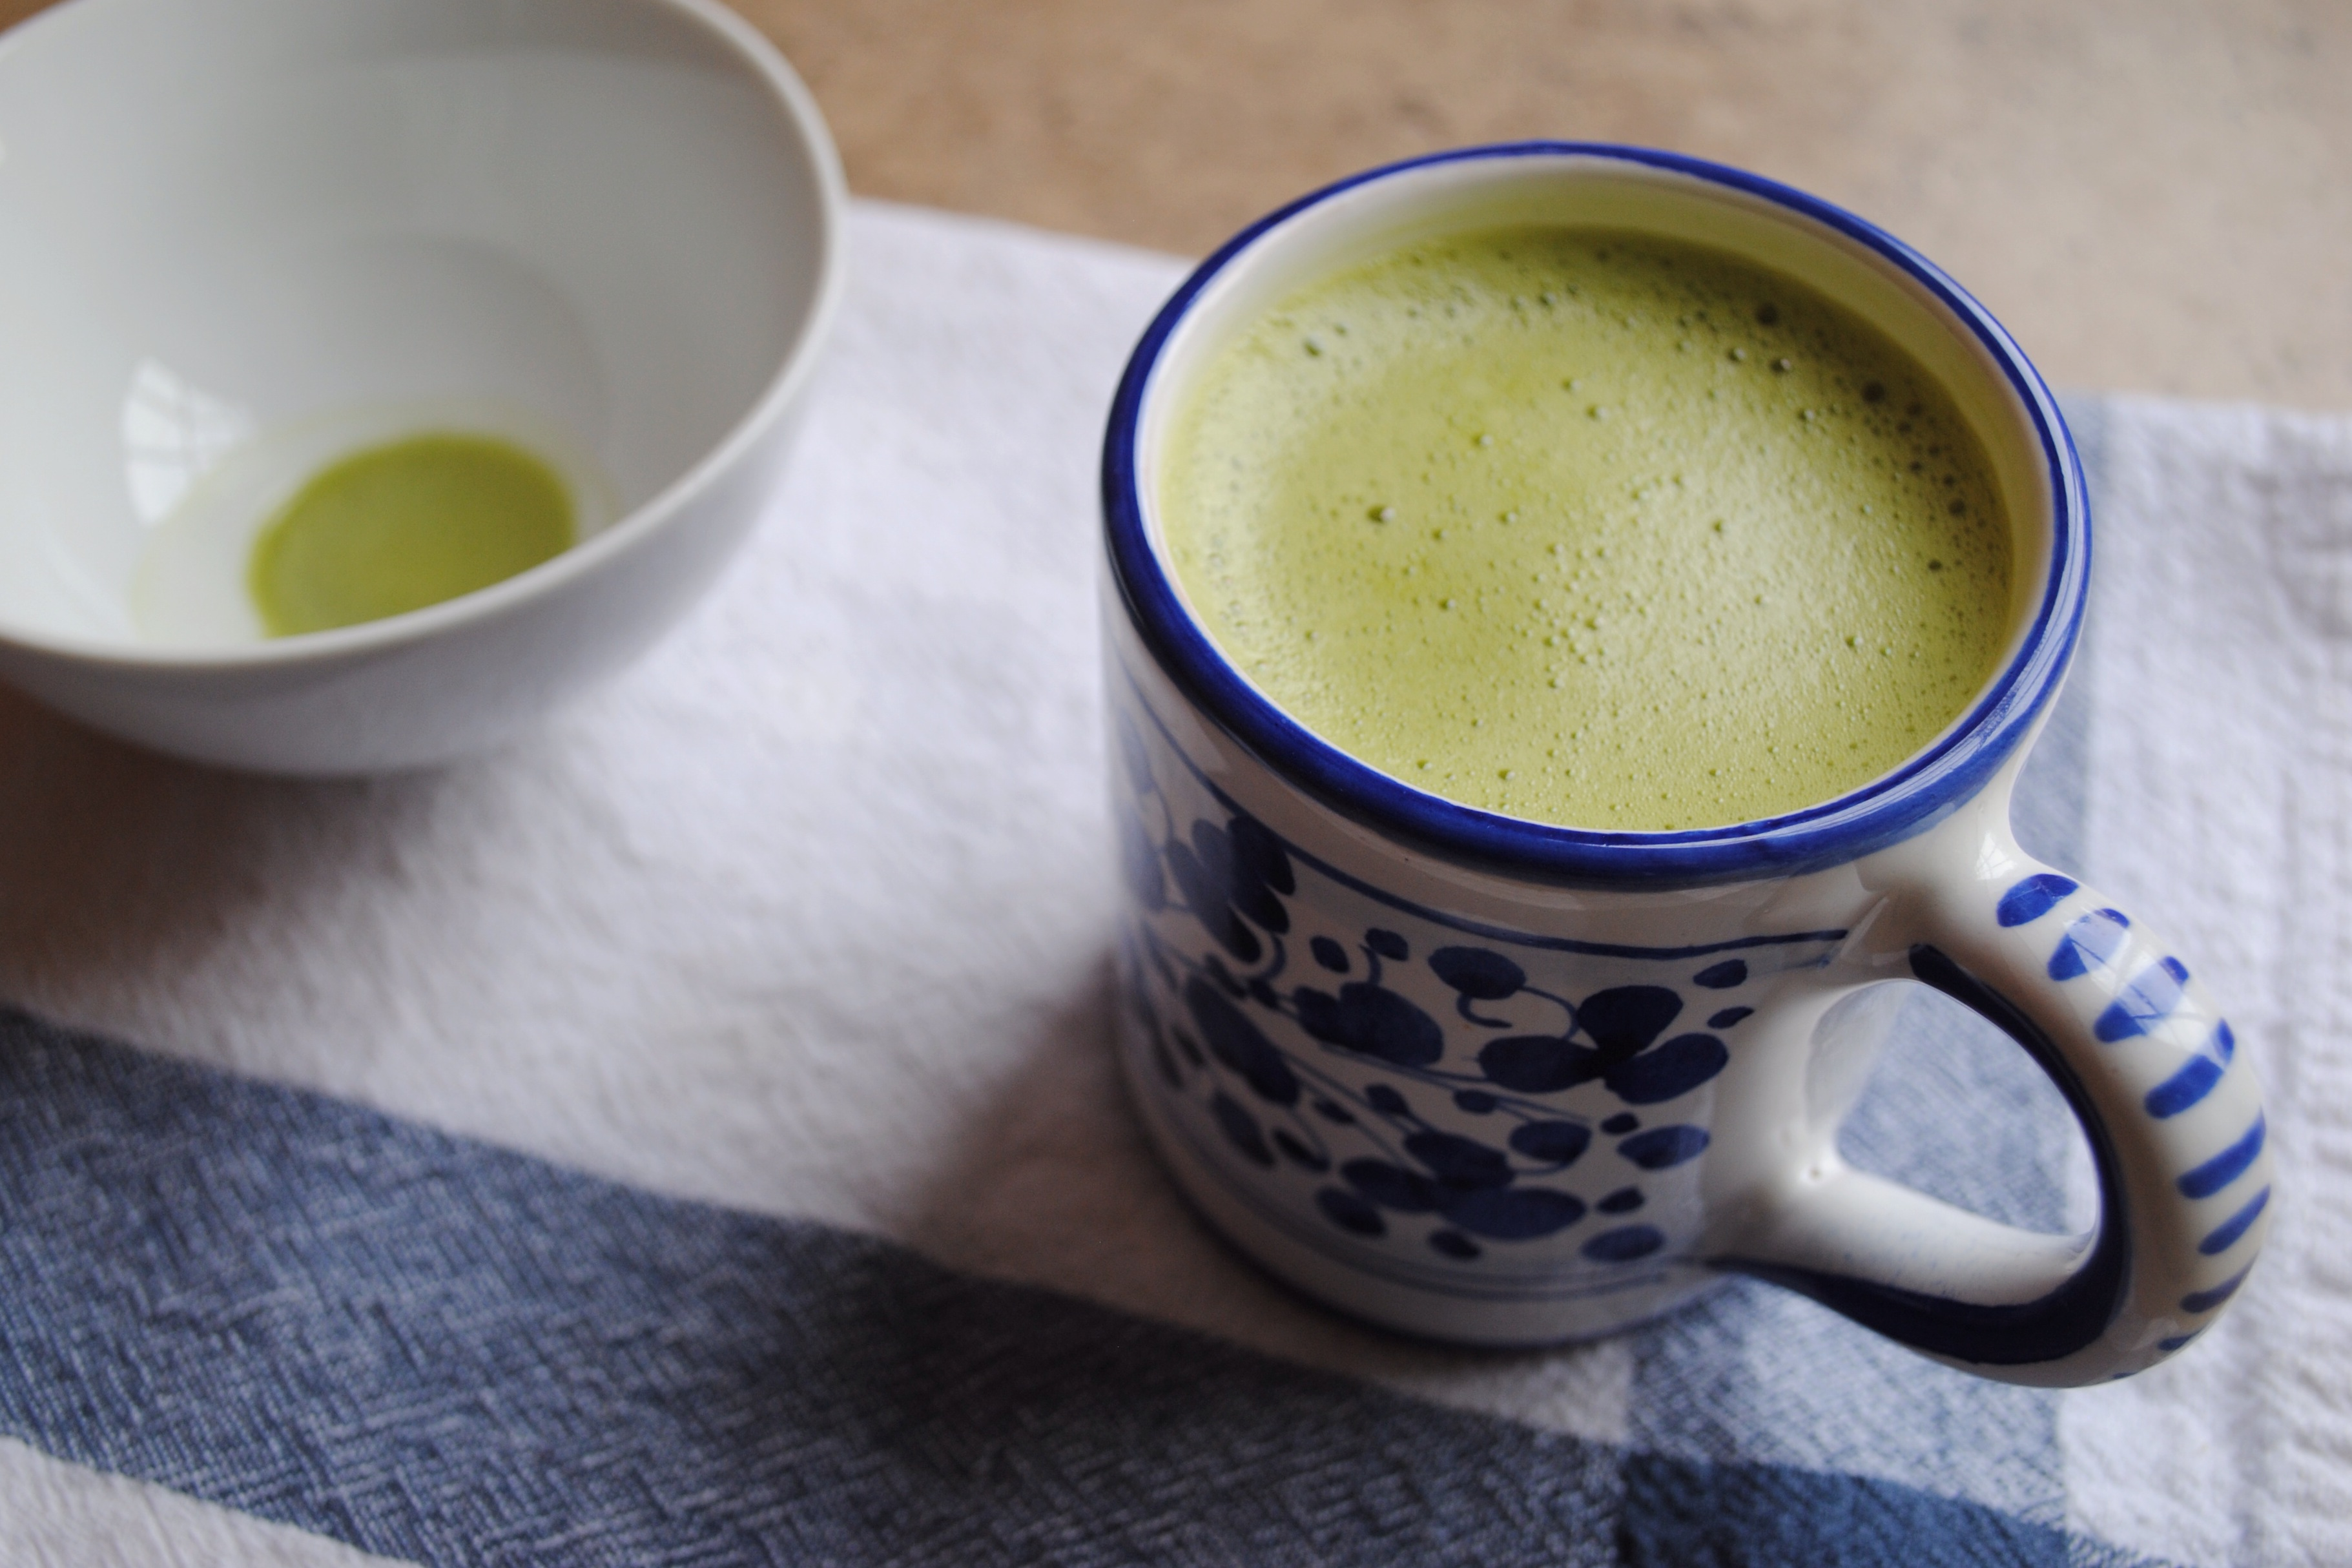 Matcha tea in a mug